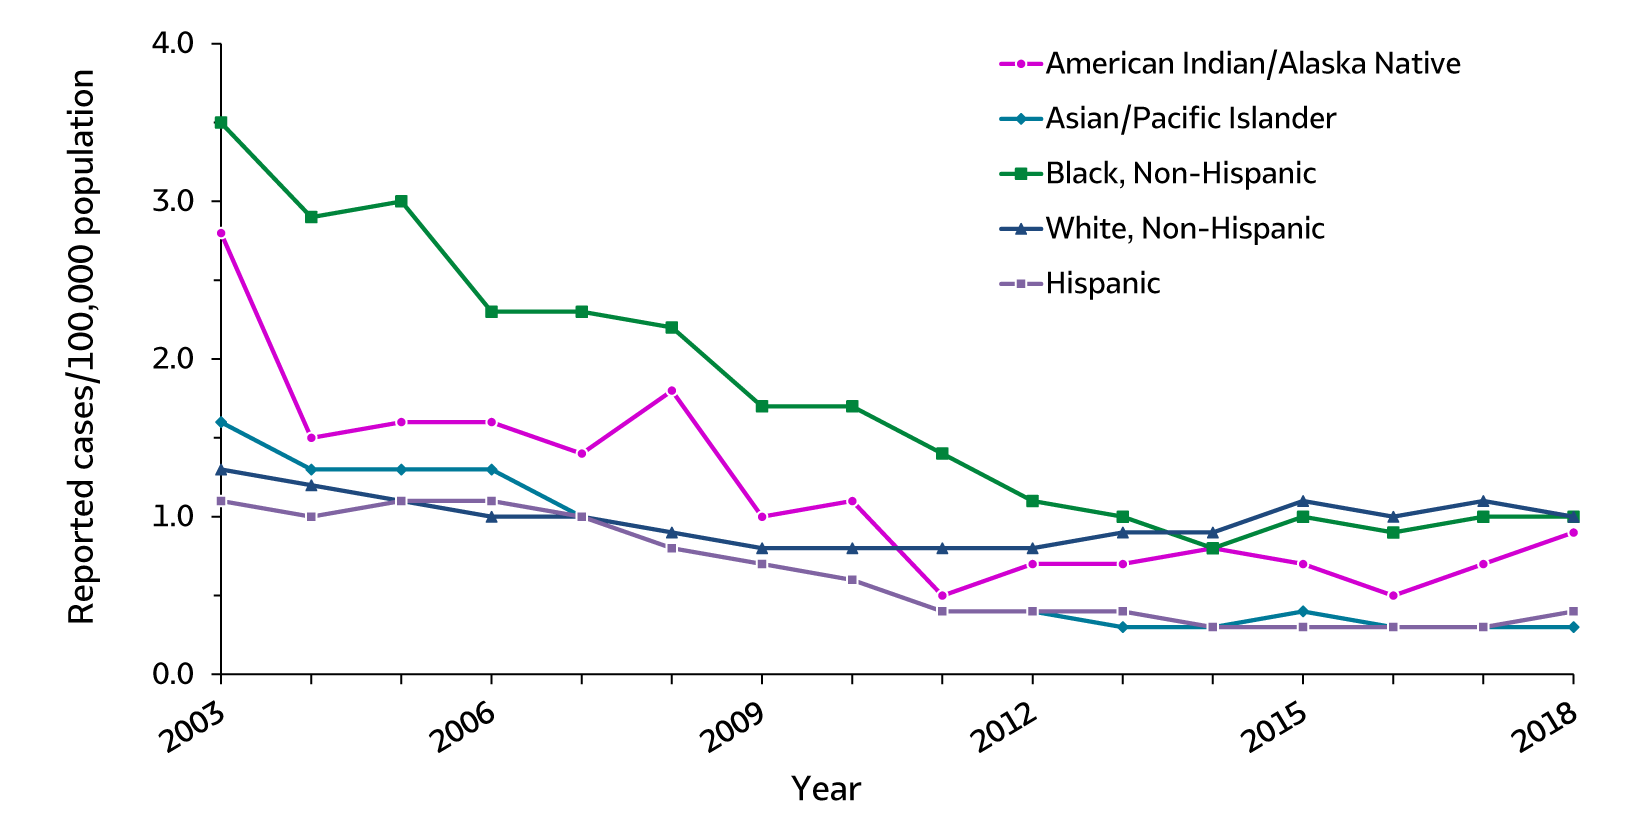 Figure 2.6. The line graph shows trends in rates of acute hepatitis B by race/ethnicity from 2003 – 2018. The race/ethnicity classifications are American Indian/Alaska Native, Asian/Pacific Islander, Black non-Hispanic, White non-Hispanic, and Hispanic. From 2003 through 2015 there was a decline in acute hepatitis B across all races/ethnicities. There was a small increase in acute hepatitis B from 2016 – 2018 for American Indian/Alaska Natives.